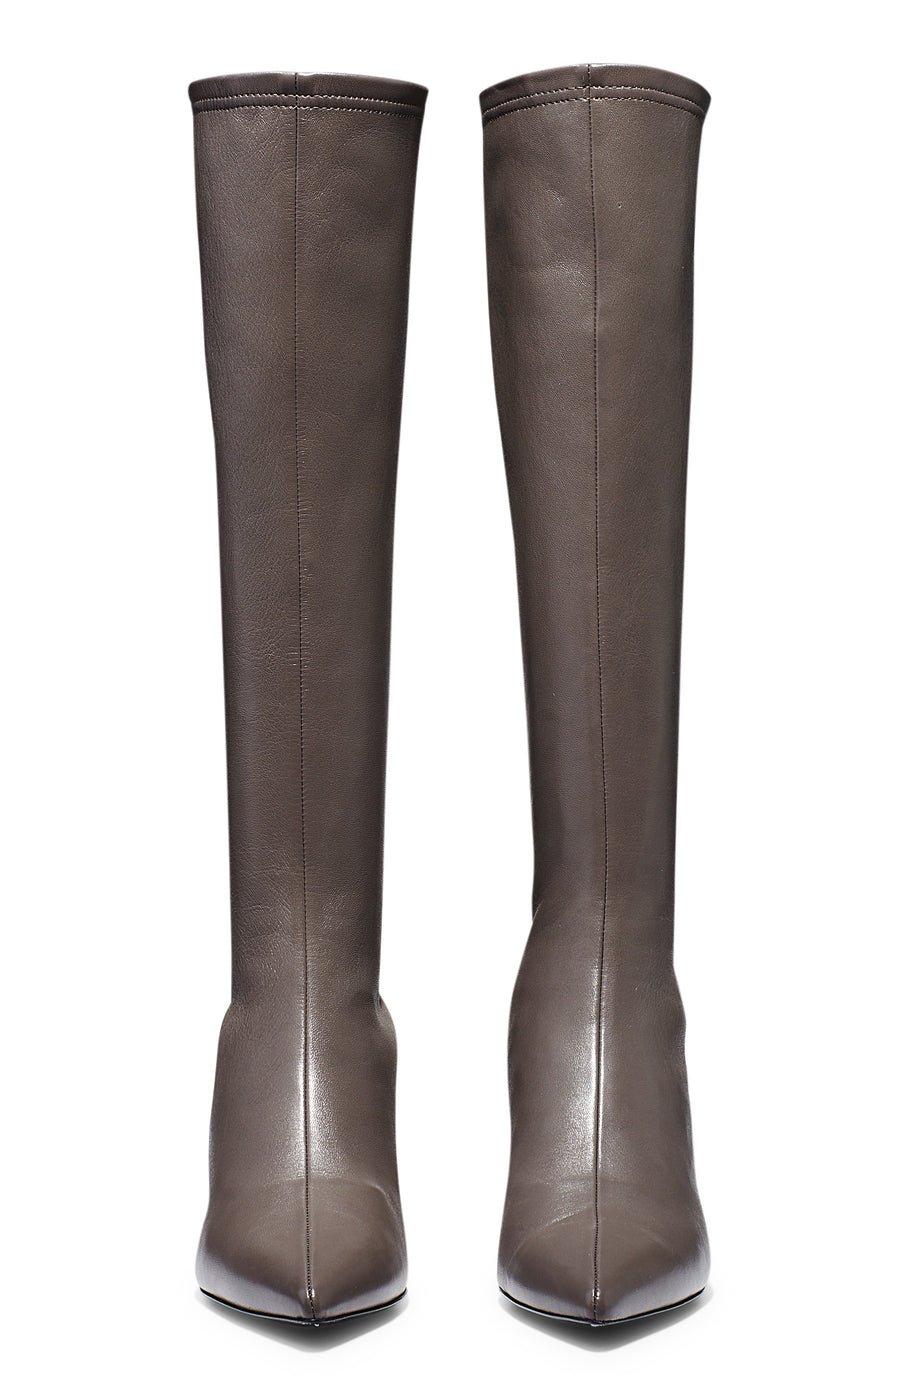 Stretch Leather Knee High Boot 6, fitted pointed toe boot, centre back zip, leather lining, leather sole, italian lamb nappa leather, color Char